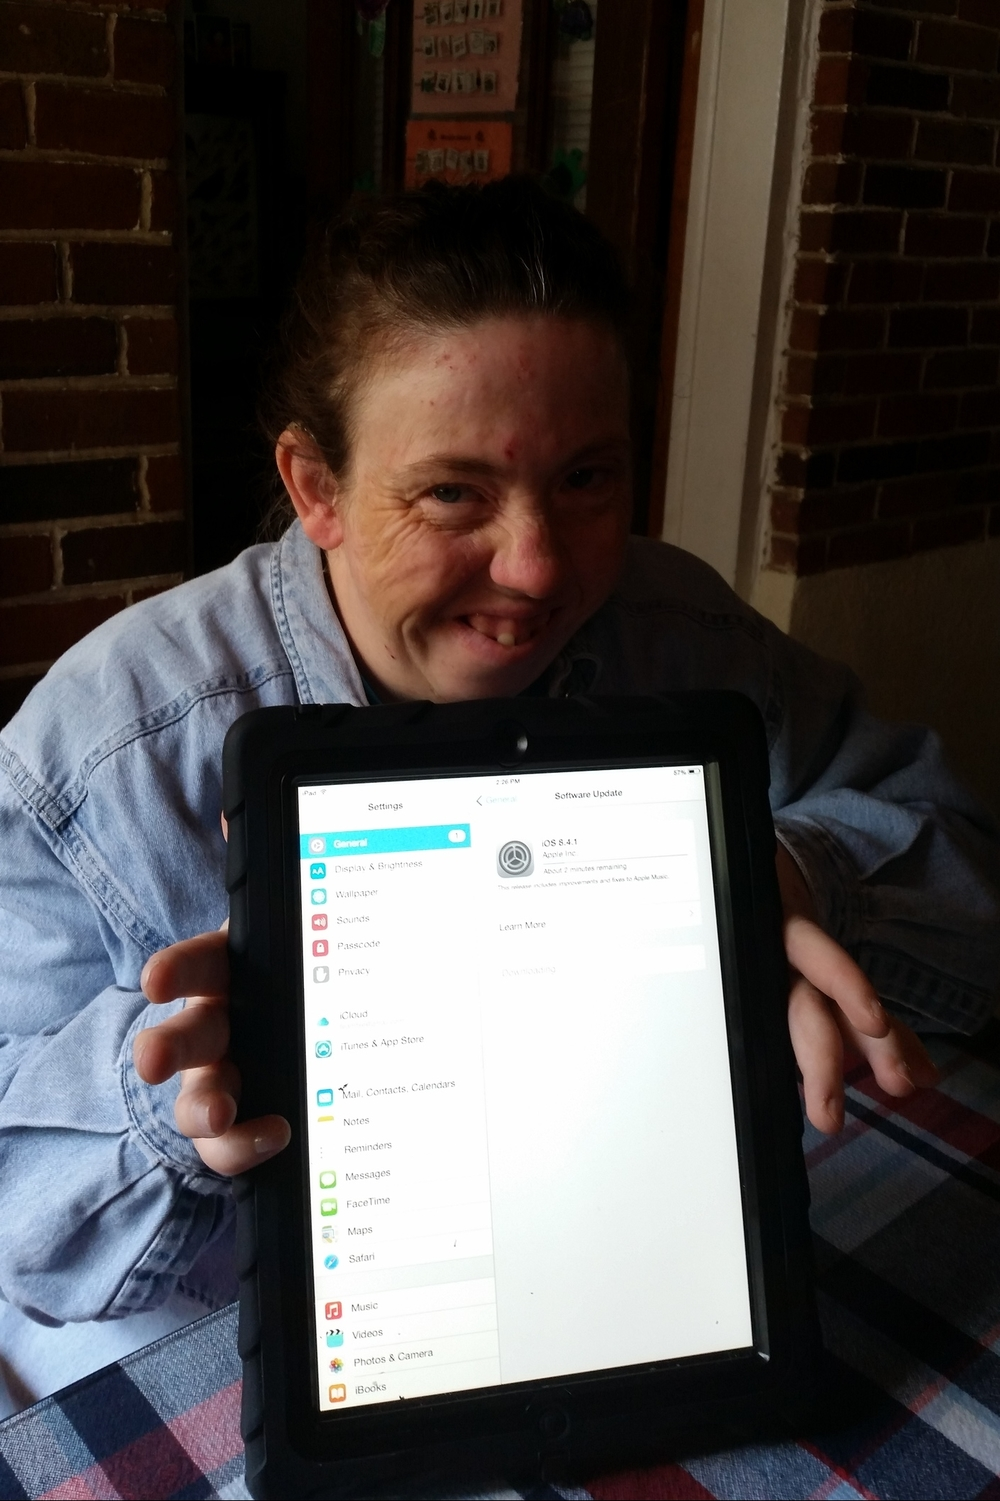 Manda received her iPad through Andrew's Gift this past May.  Before working on the iPad Manda worked on flash cards with Cornerstone. We reviewed flash cards that included places she goes, food she eats, and activities that she does. Manda is able to verbalize words but it is often difficult for people to understand her due to Manda dropping the first and last syllable of most words.  With the iPad, we transferred all the flash cards into ProloQuo. Now Manda is able to identify all the icons within ProloQuo. She now has the ability to use the iPad to help her with communicating with both her family and others in the community.